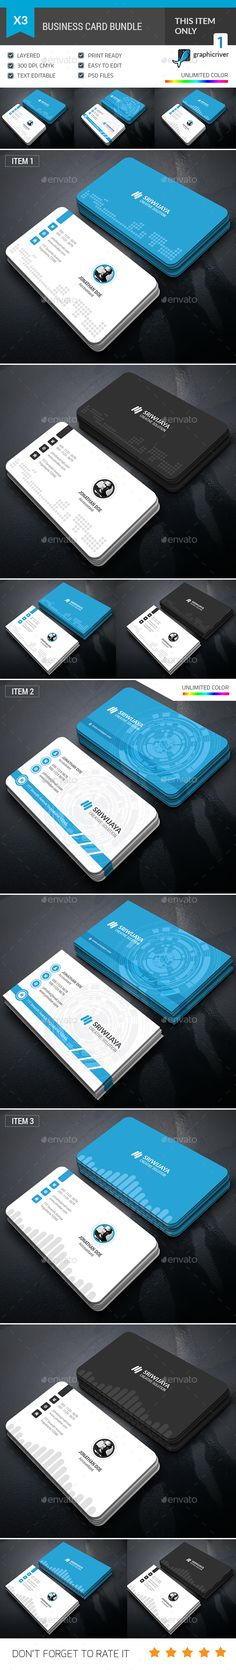 Business Card Bundle - Corporate Business Cards                                                                                                                                                                                 More